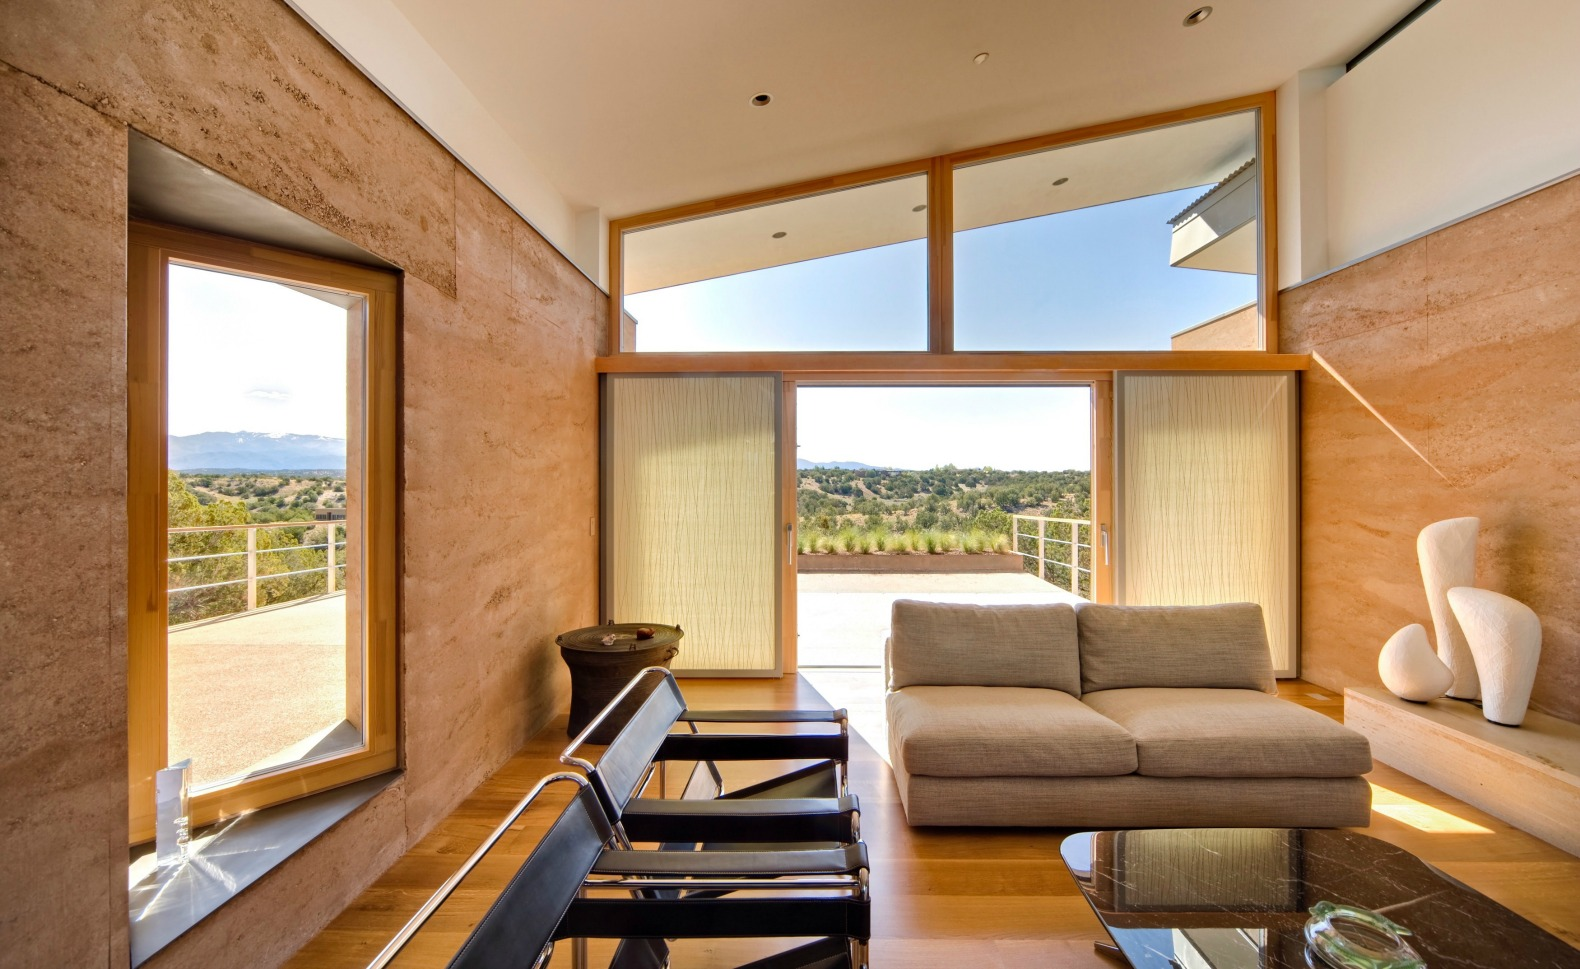 Striking Rammed Earth Home Blends Into The Hills Of Santa Fe